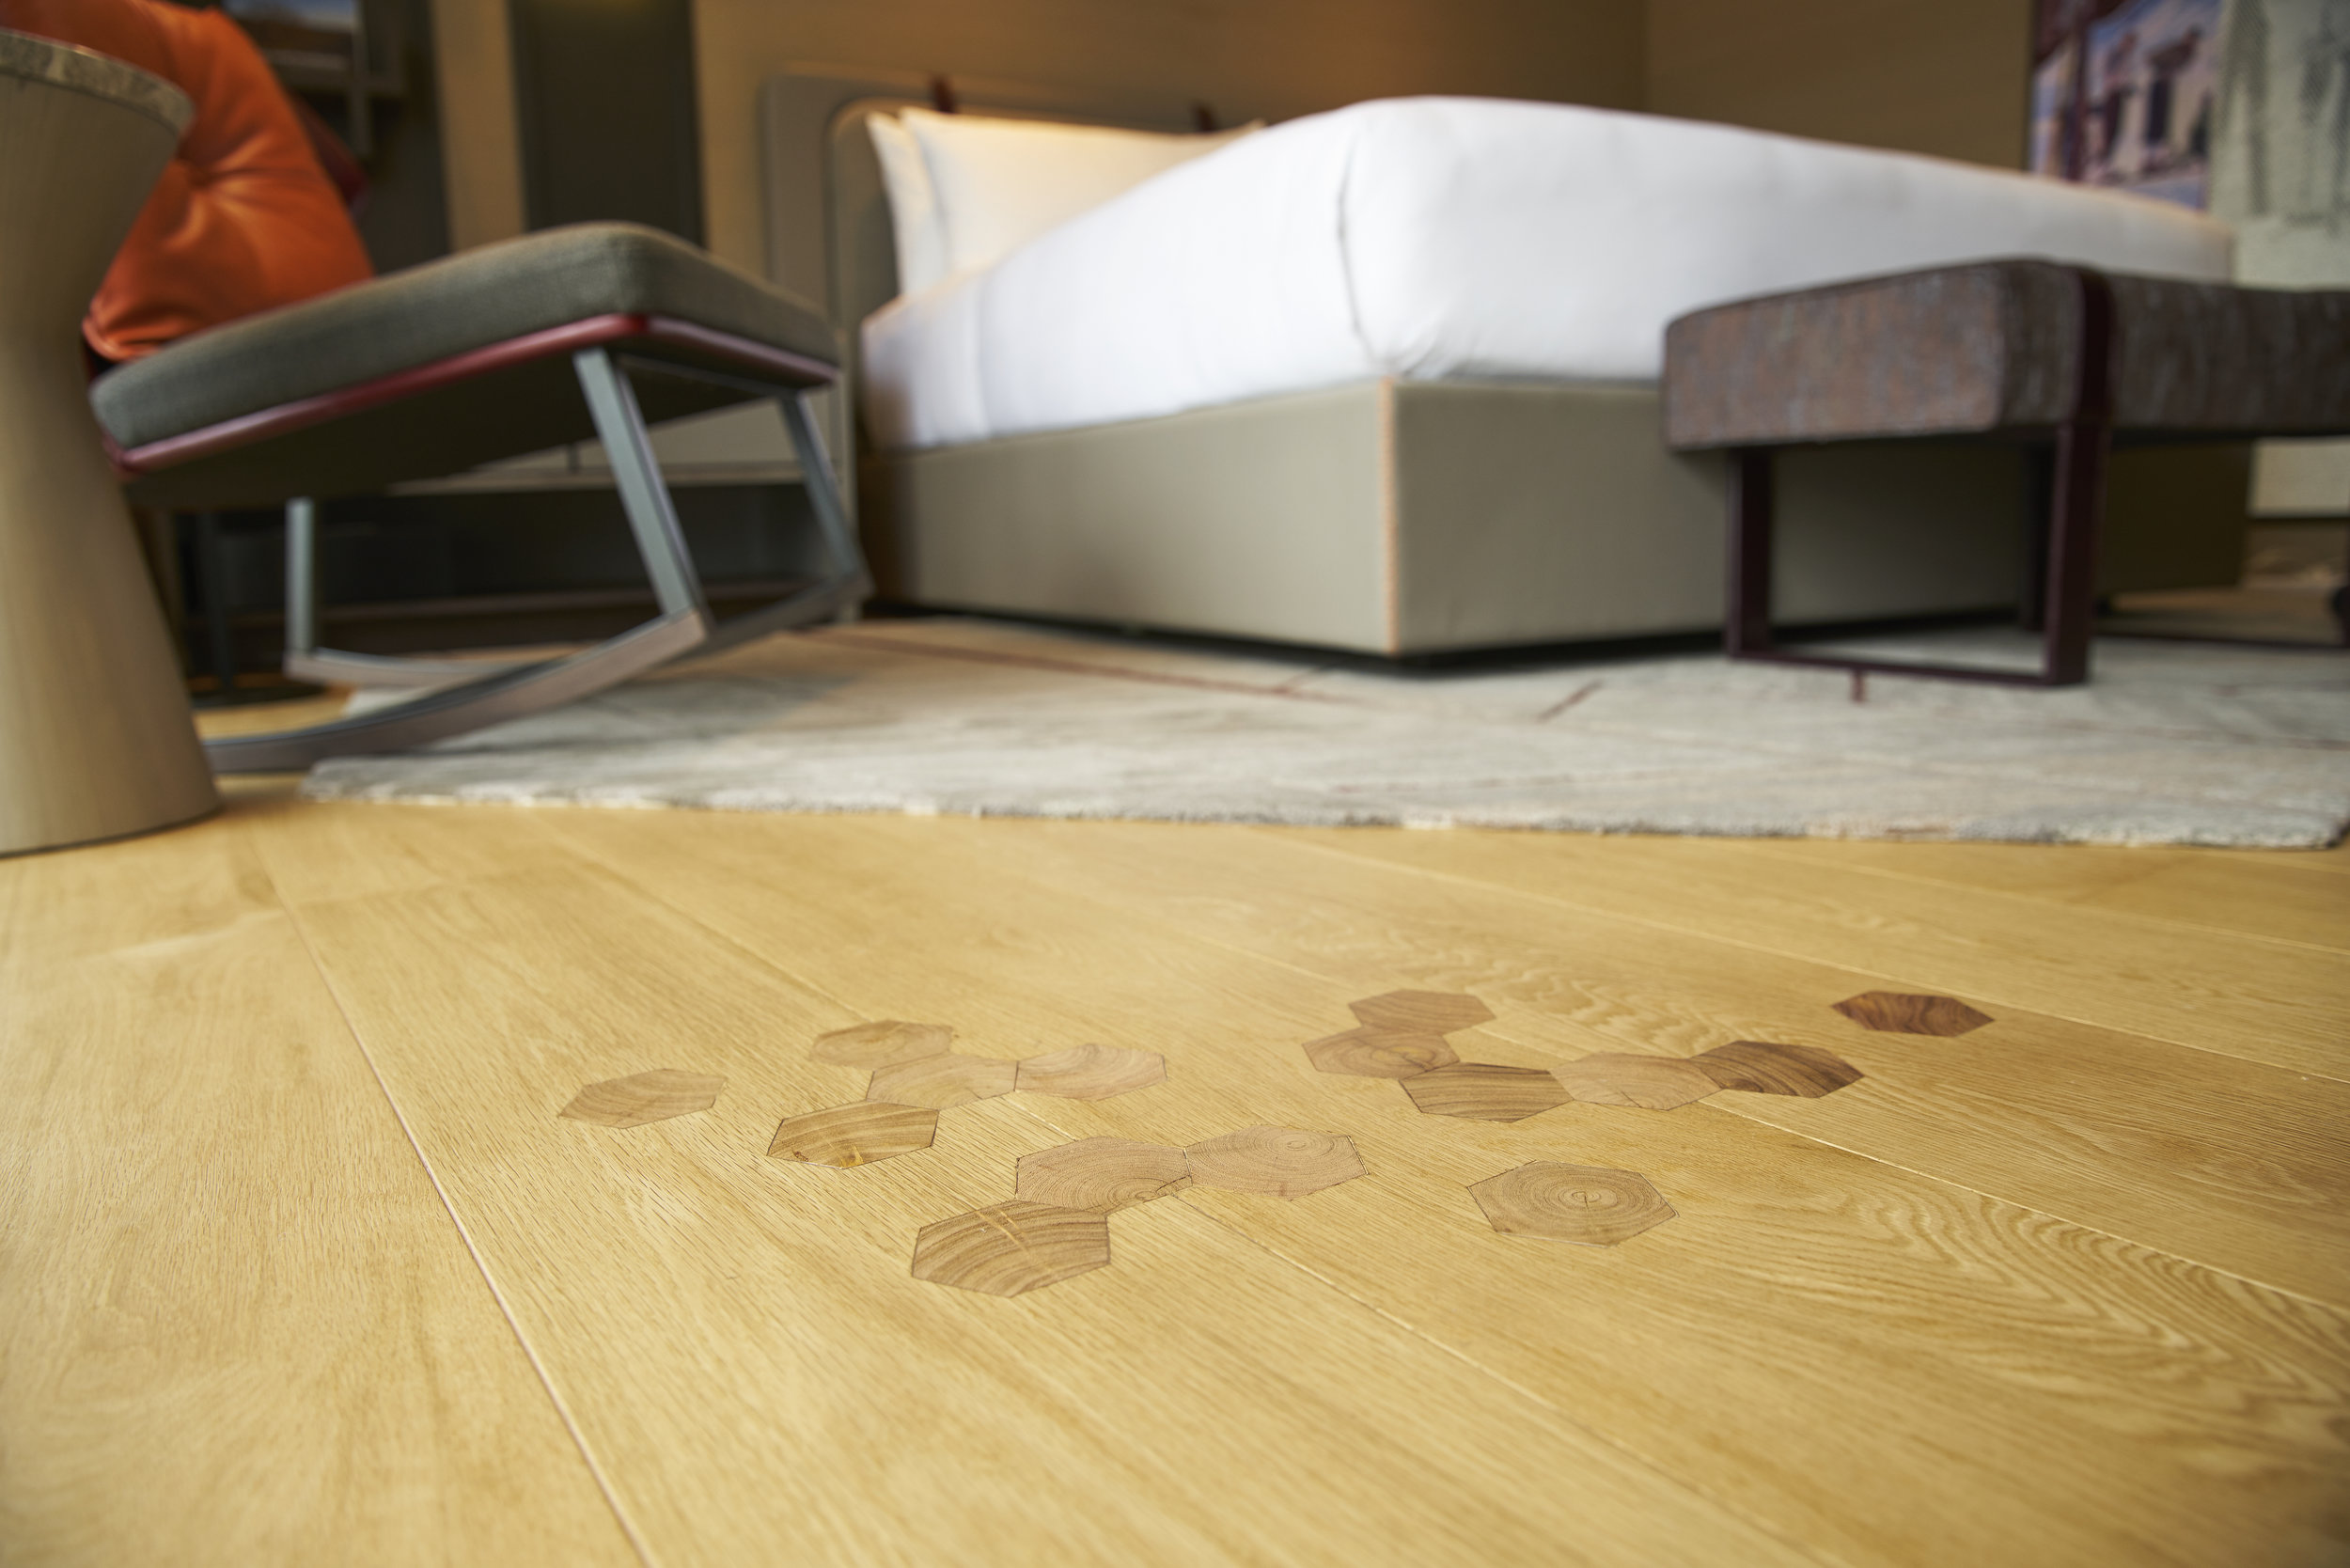 As a nod to the Swiss vernacular, a twist was added to the wood flooring – solid wooden inserts reminiscent of an actual Swiss lodge.